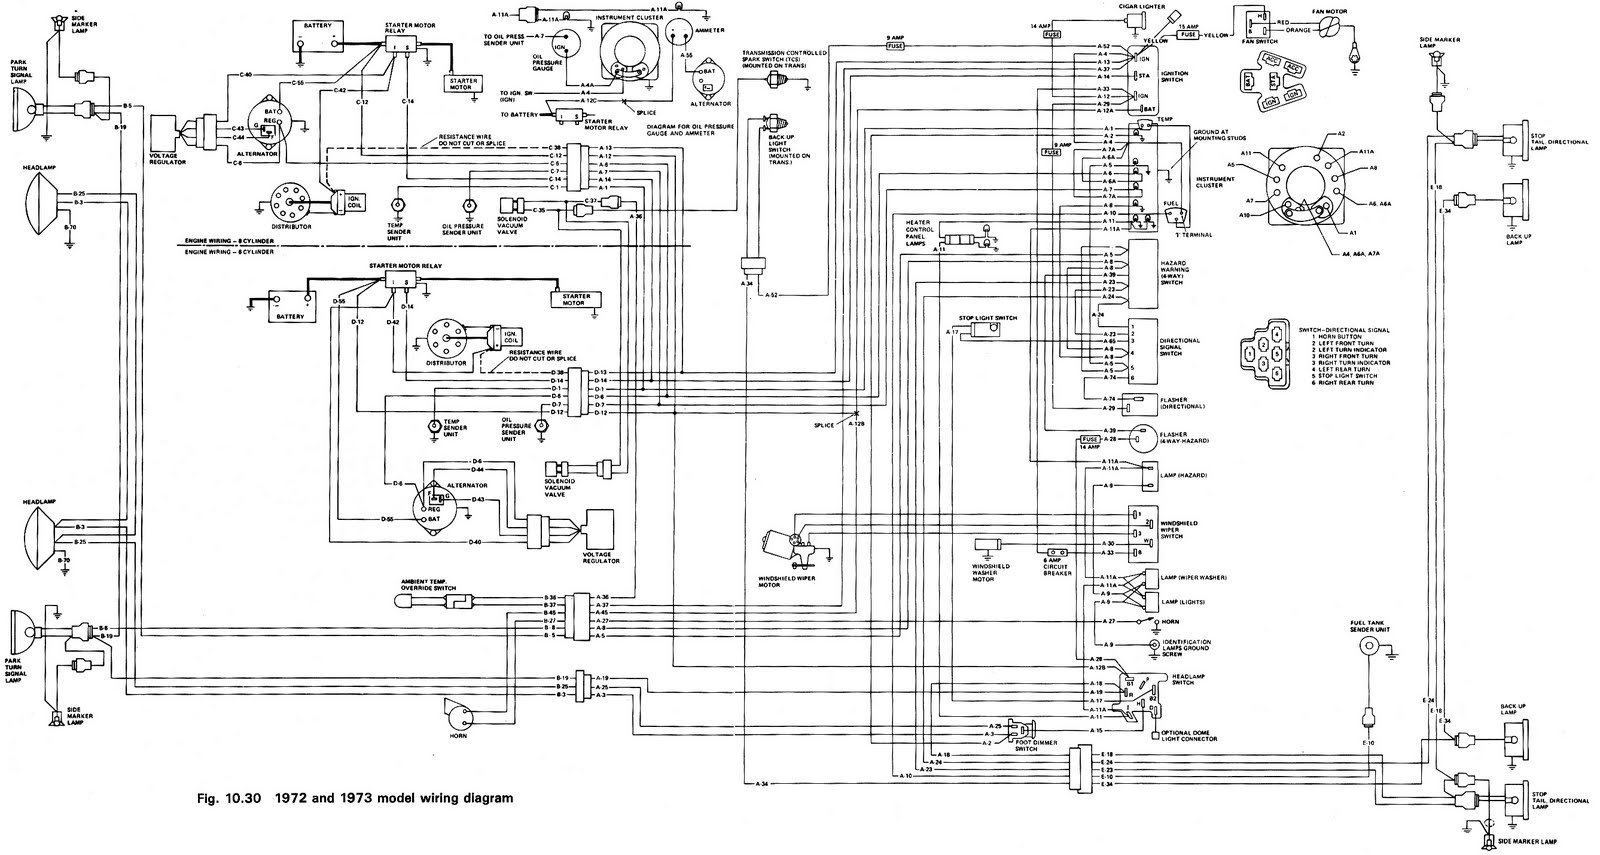 Autocar Wiring Diagram Wiring Diagrams Schematic Autocar Truck Wiring  Diagram Autocar Wiring Diagram